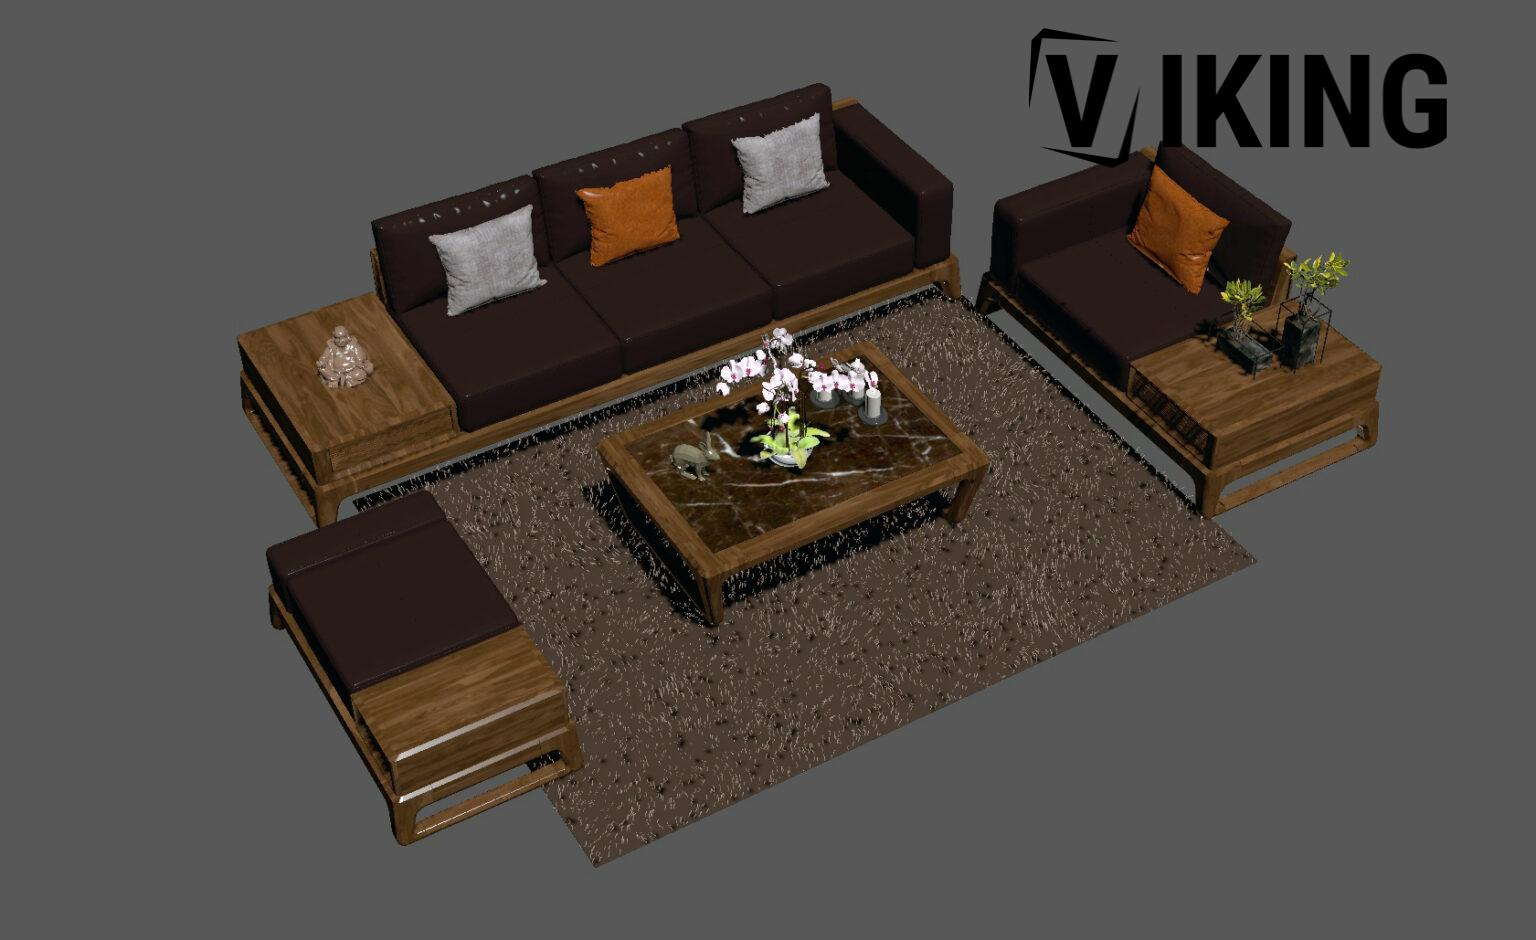 3D Model Sofa Oc Cho Dong Gia 238 By Le Hieu 1 1536x940 1